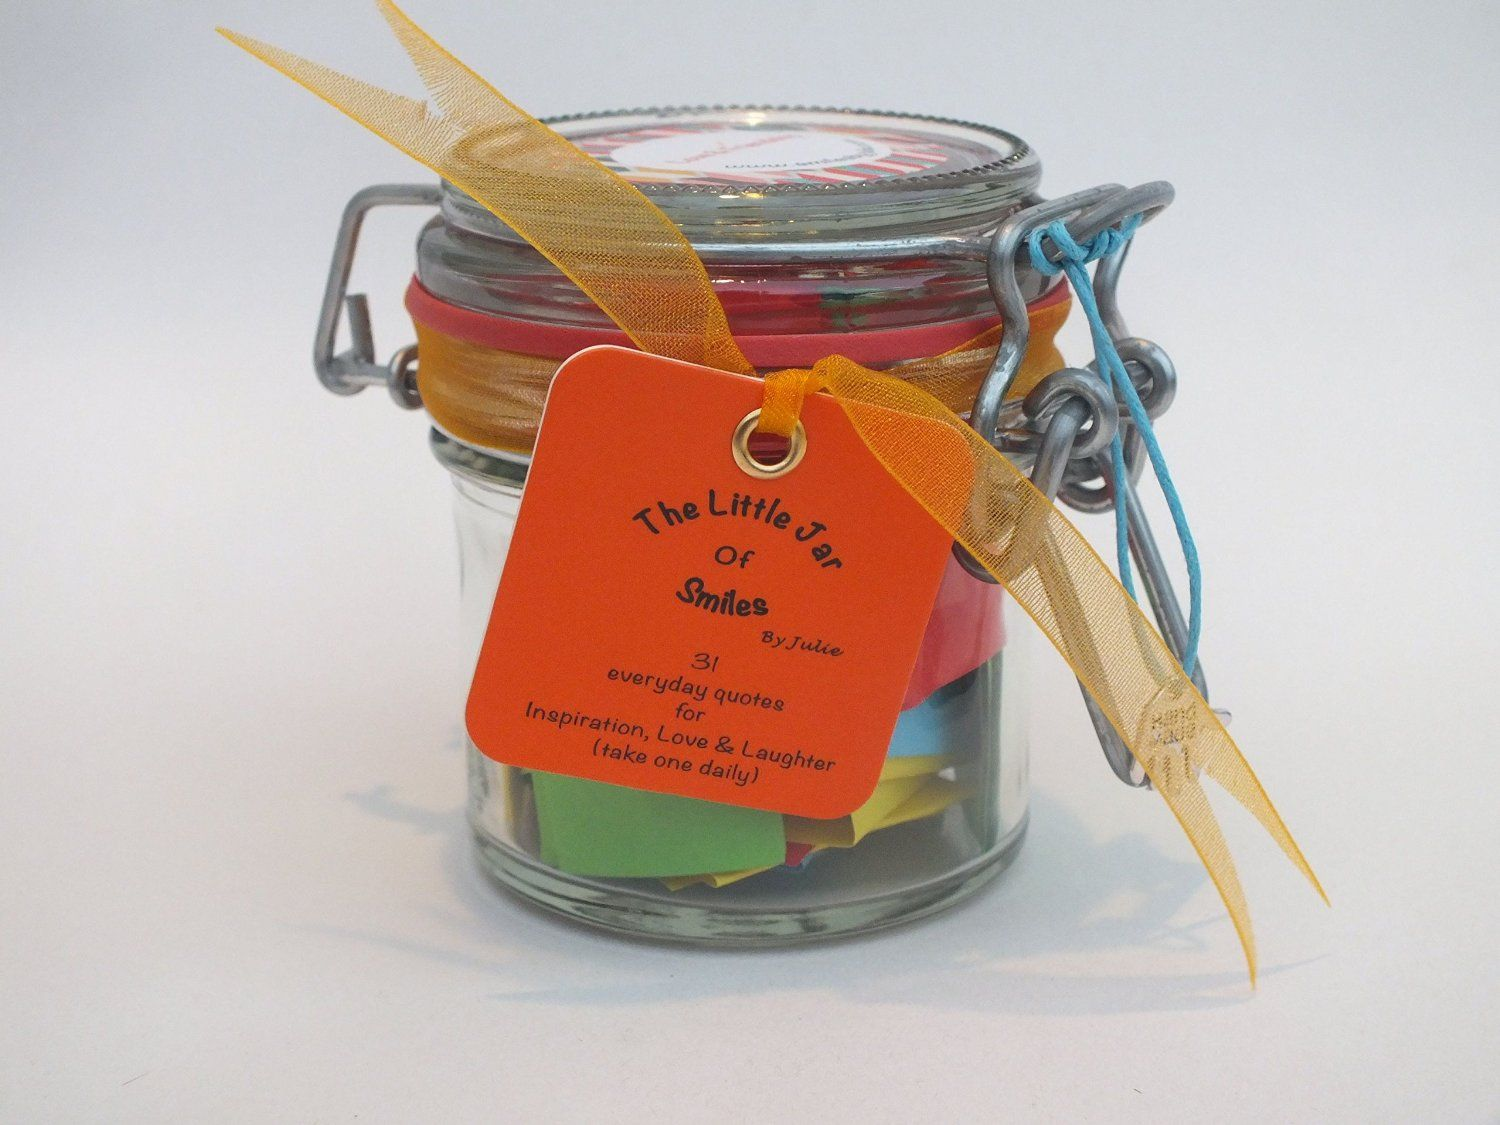 *PRIME DAY SALE* A Month of ★Success & Inspiration★ quotations in a jar. Perfect Inspirational Gift for the loved ones in your life especially for Birthdays, Graduation and other special holidays, a month of motivational Thoughts and Sayings in a 125ml Kilner clip type glass jar to inspire loved ones to happiness & success. For teachers, friends, family and special people in your life - mum, dad, wife, brother, husband, sisters, aunt, uncles ★Start your days with a smile★